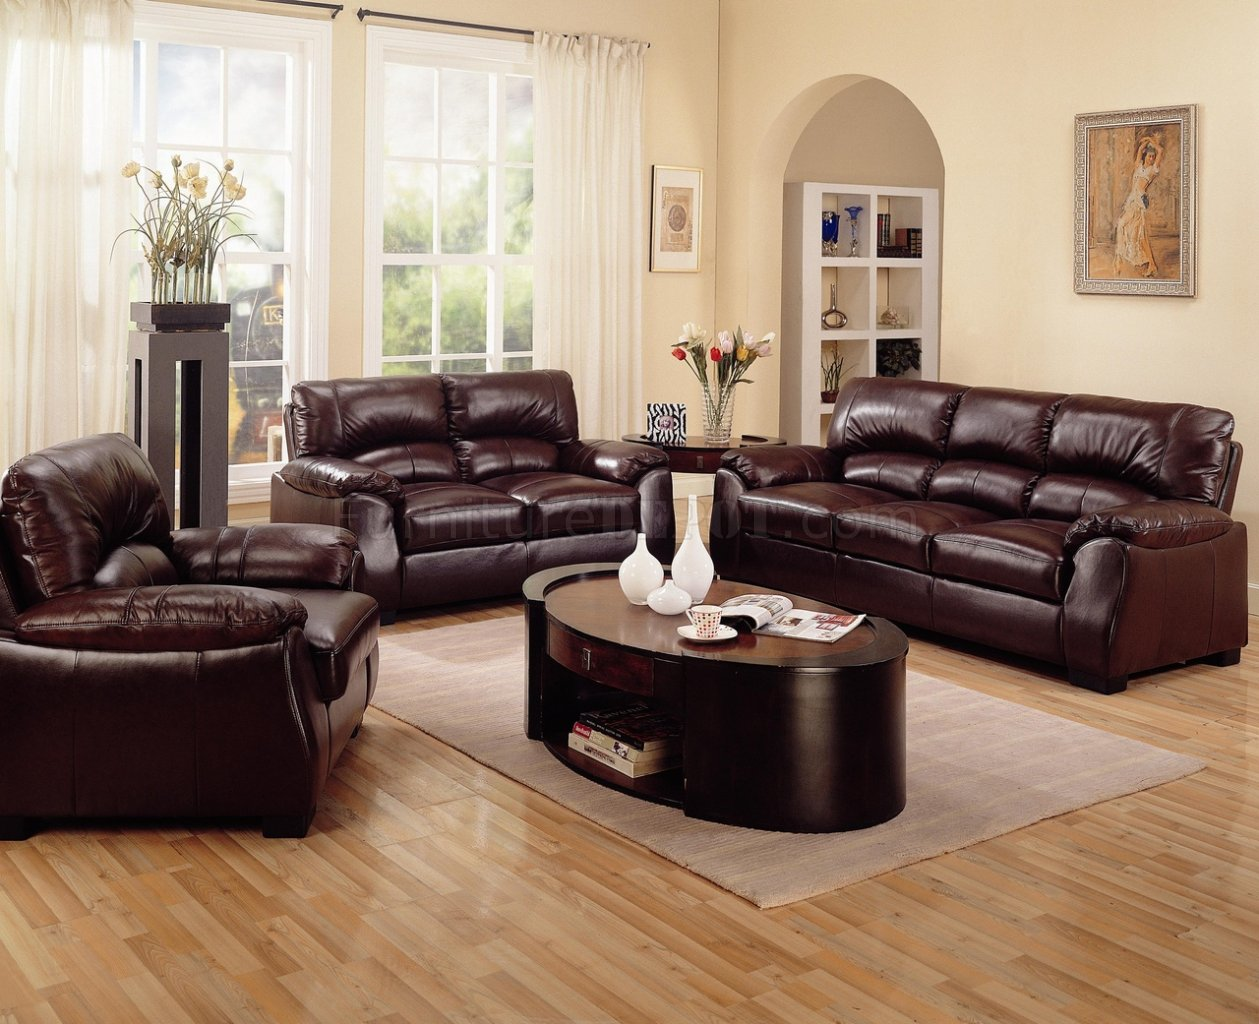 Rich Brown Leather Match Contemporary Living Room Sofa W Options